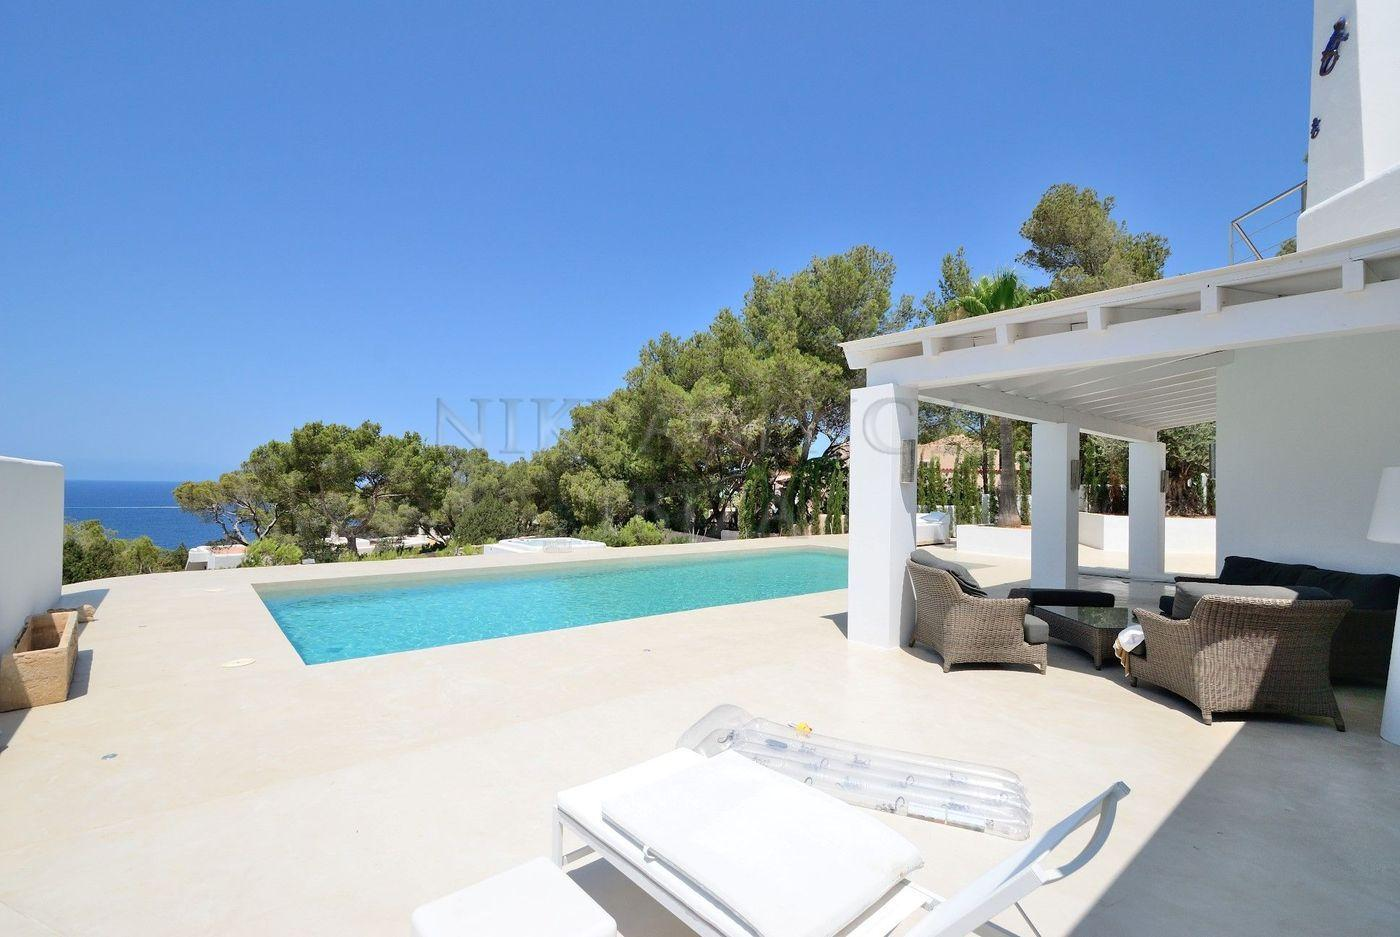 7. House for sale in Sant Josep de sa Talaia Ibiza - Fantastic 4 Bed Villa For Sale in Sant Josep de sa Talaia, Ibiza!